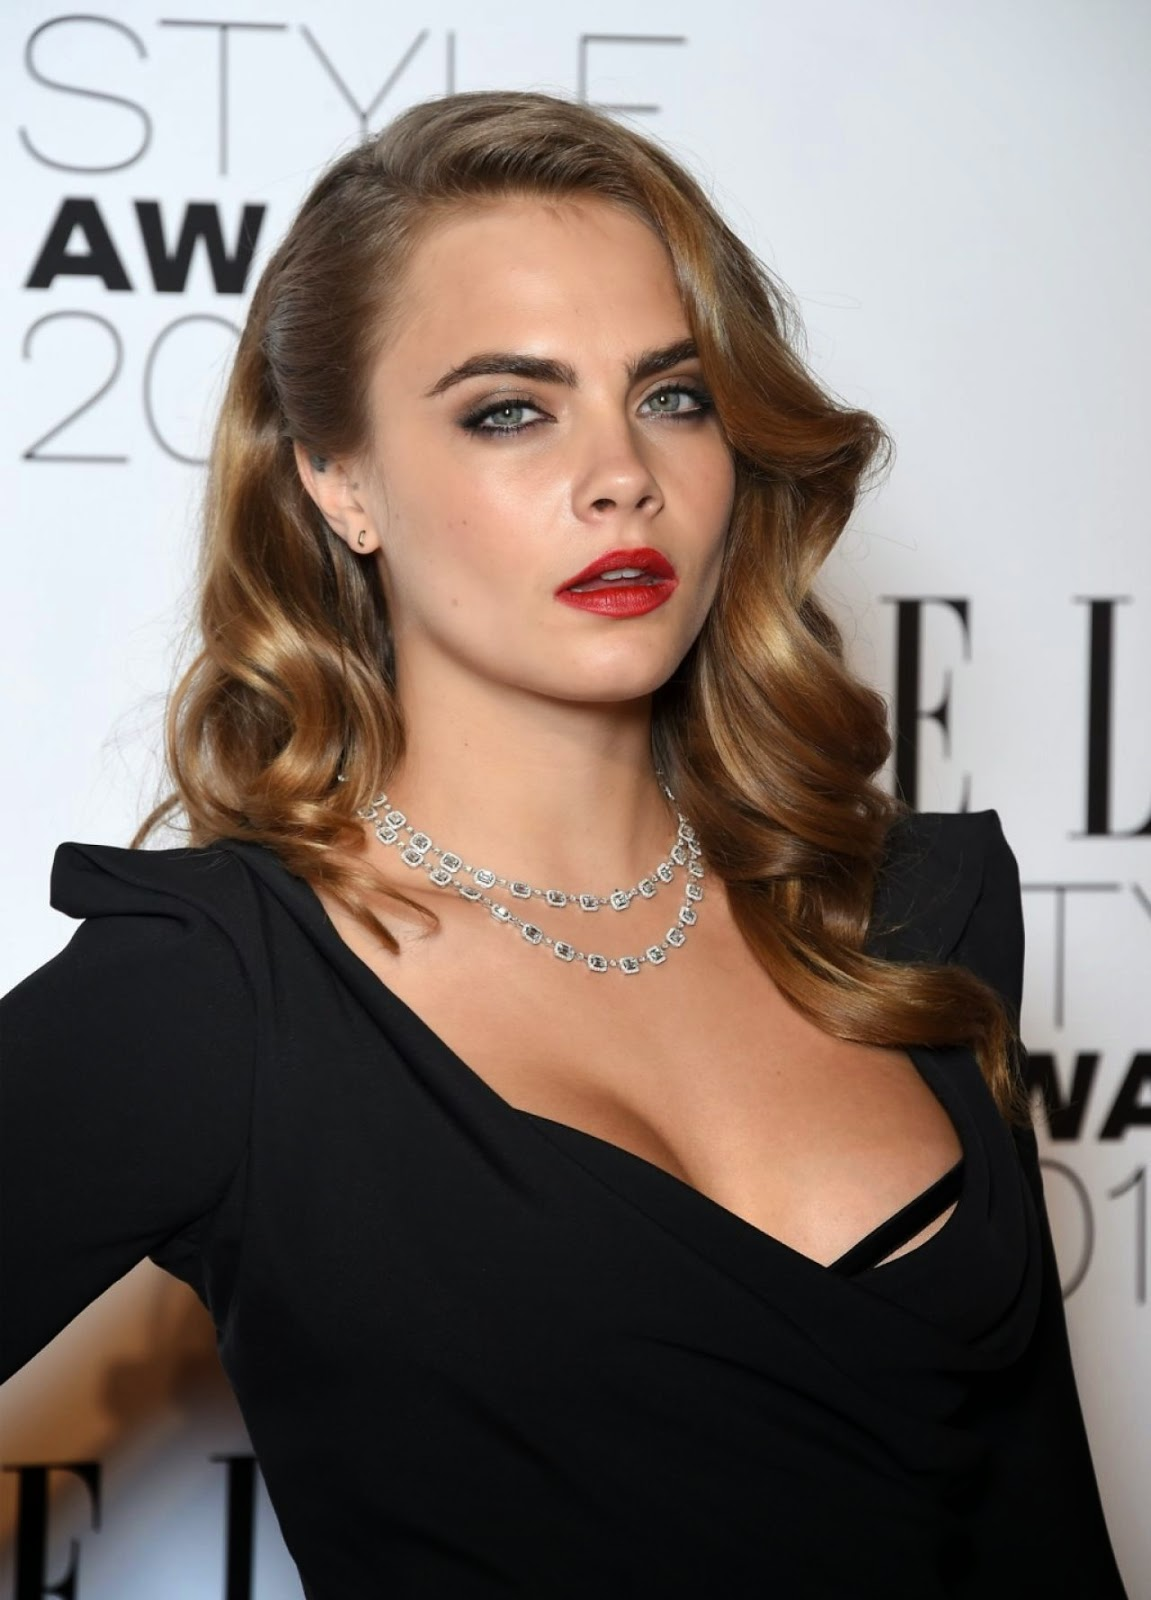 Cara Delevingne Is Elegant In Black At The 2015 Elle Style